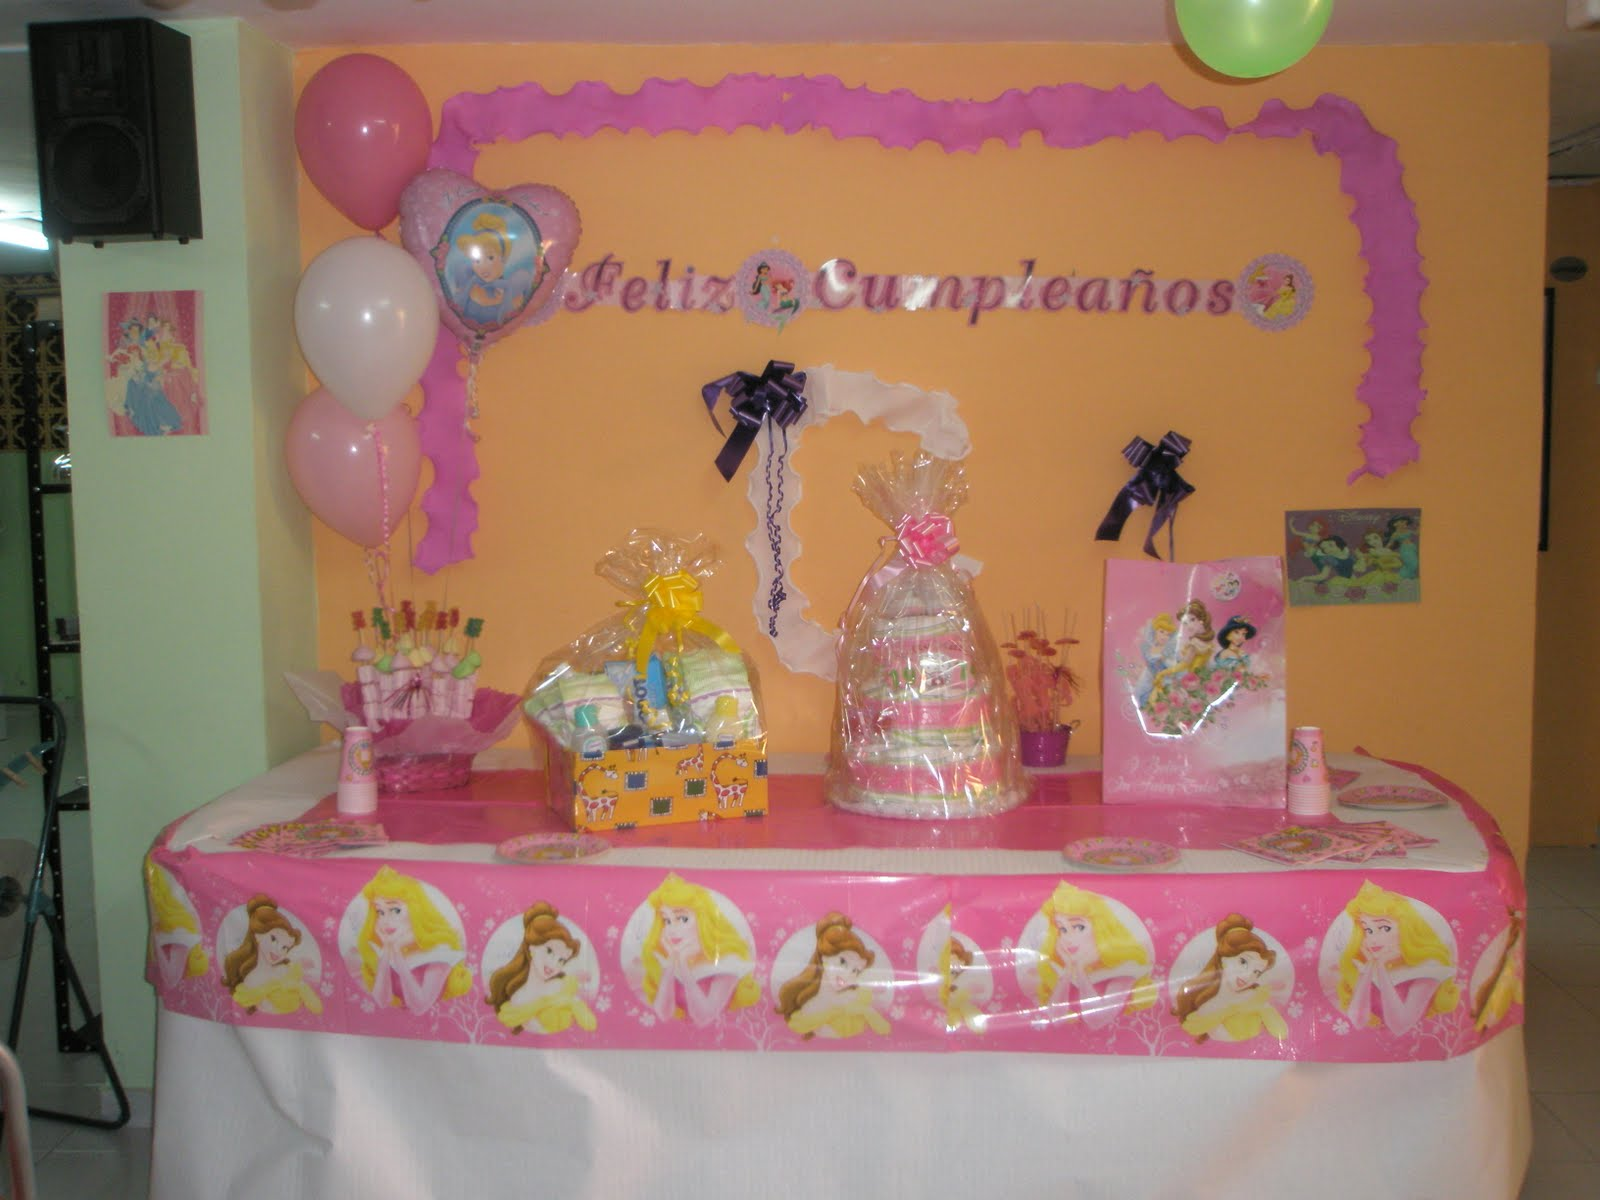 Decoracion de cumpleanos cake ideas and designs - Ideas para cumpleanos infantiles ...